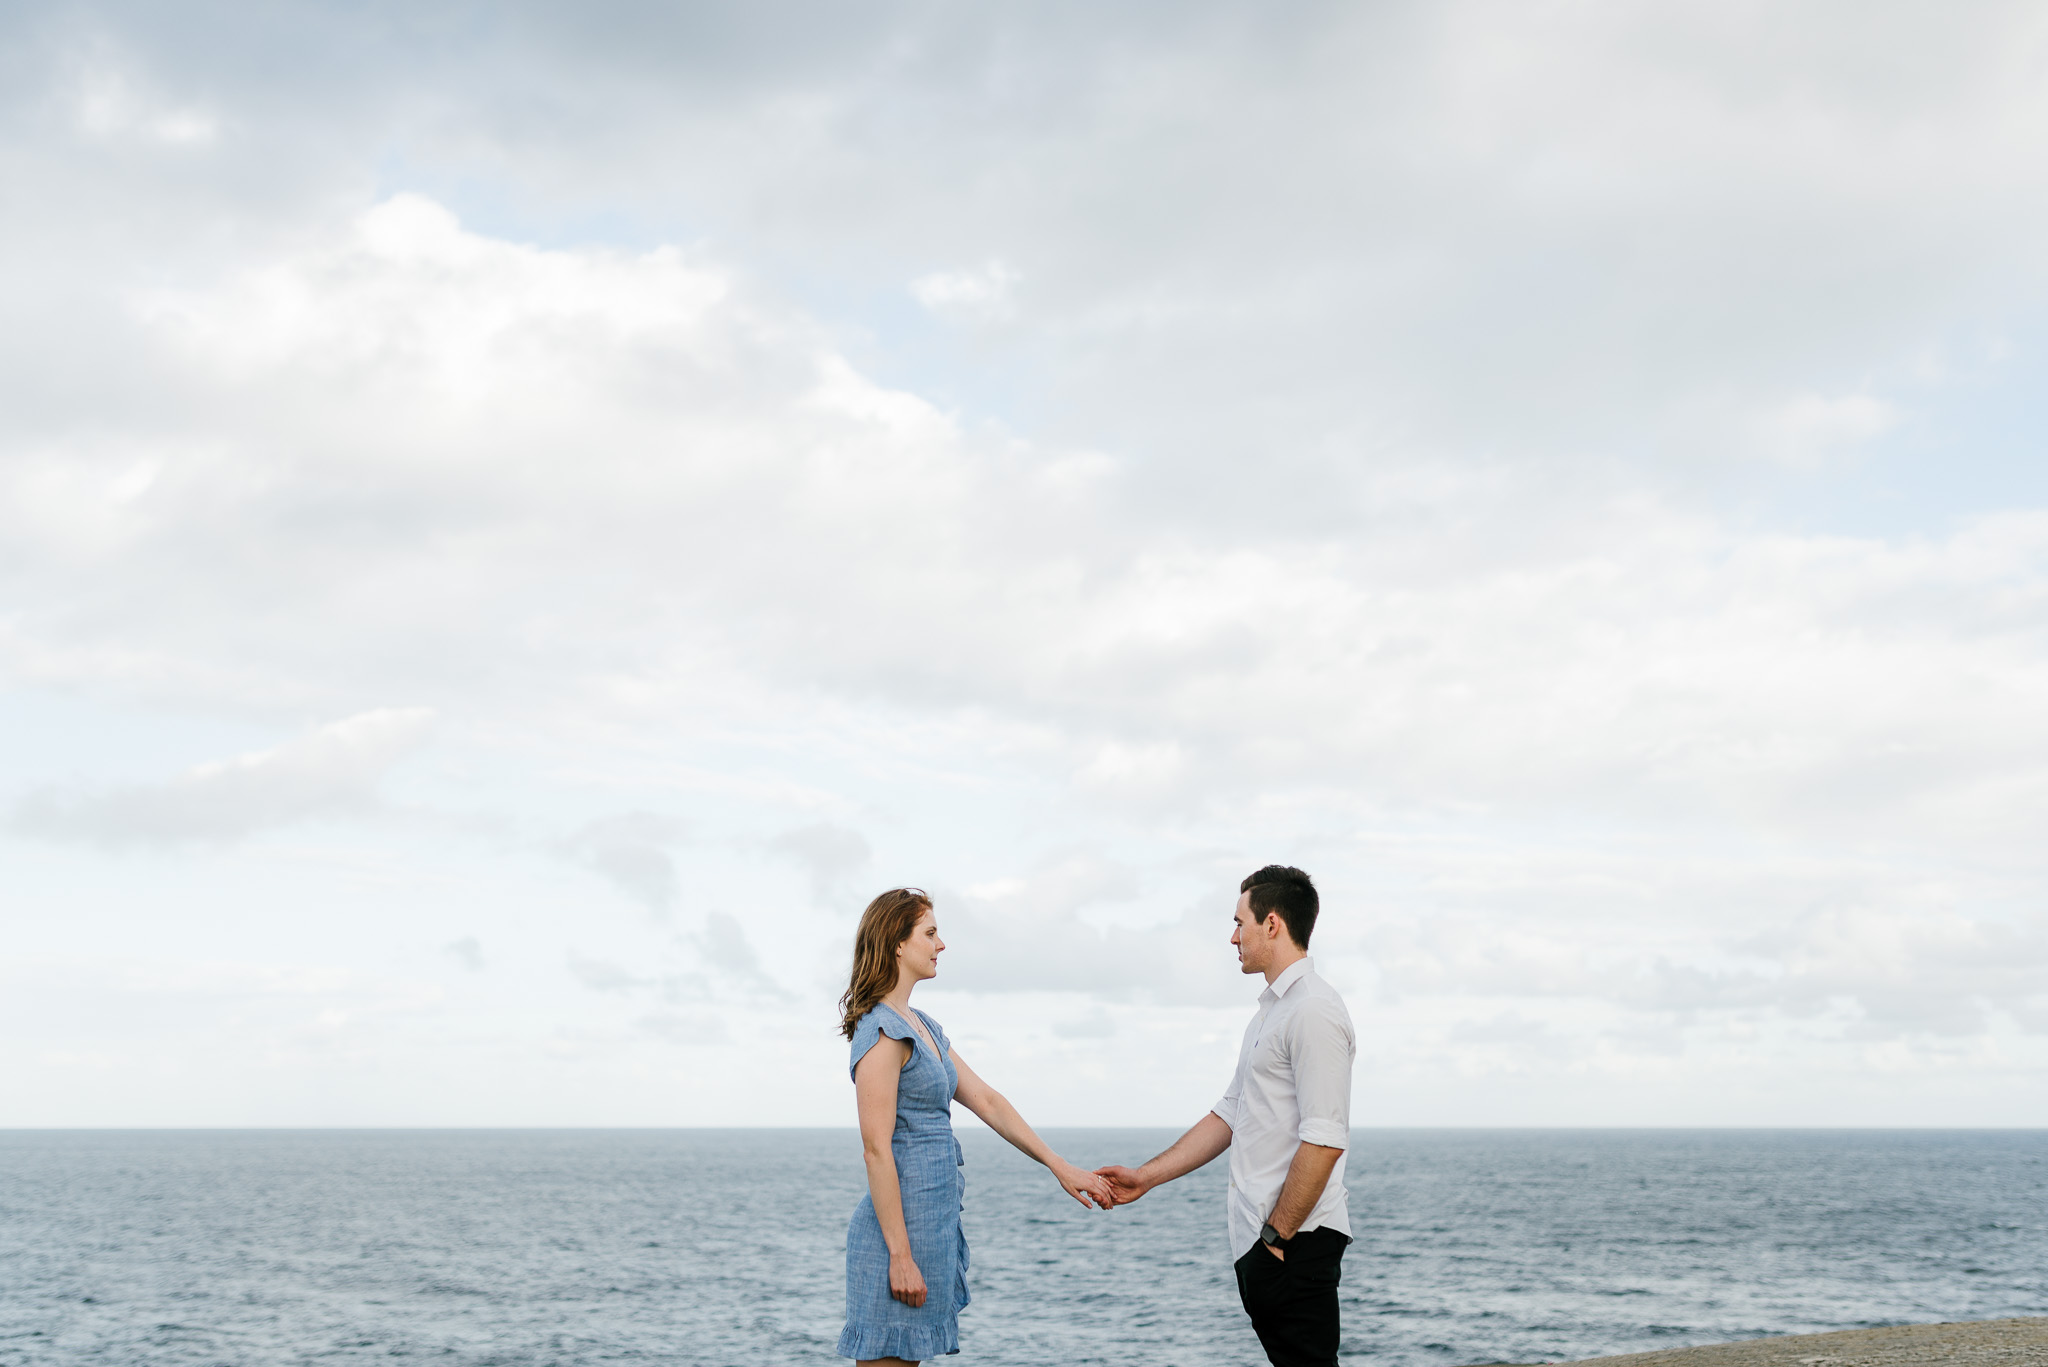 PhotographyByRenata_B&M_Proposal_Watsons_Bay-1.JPG